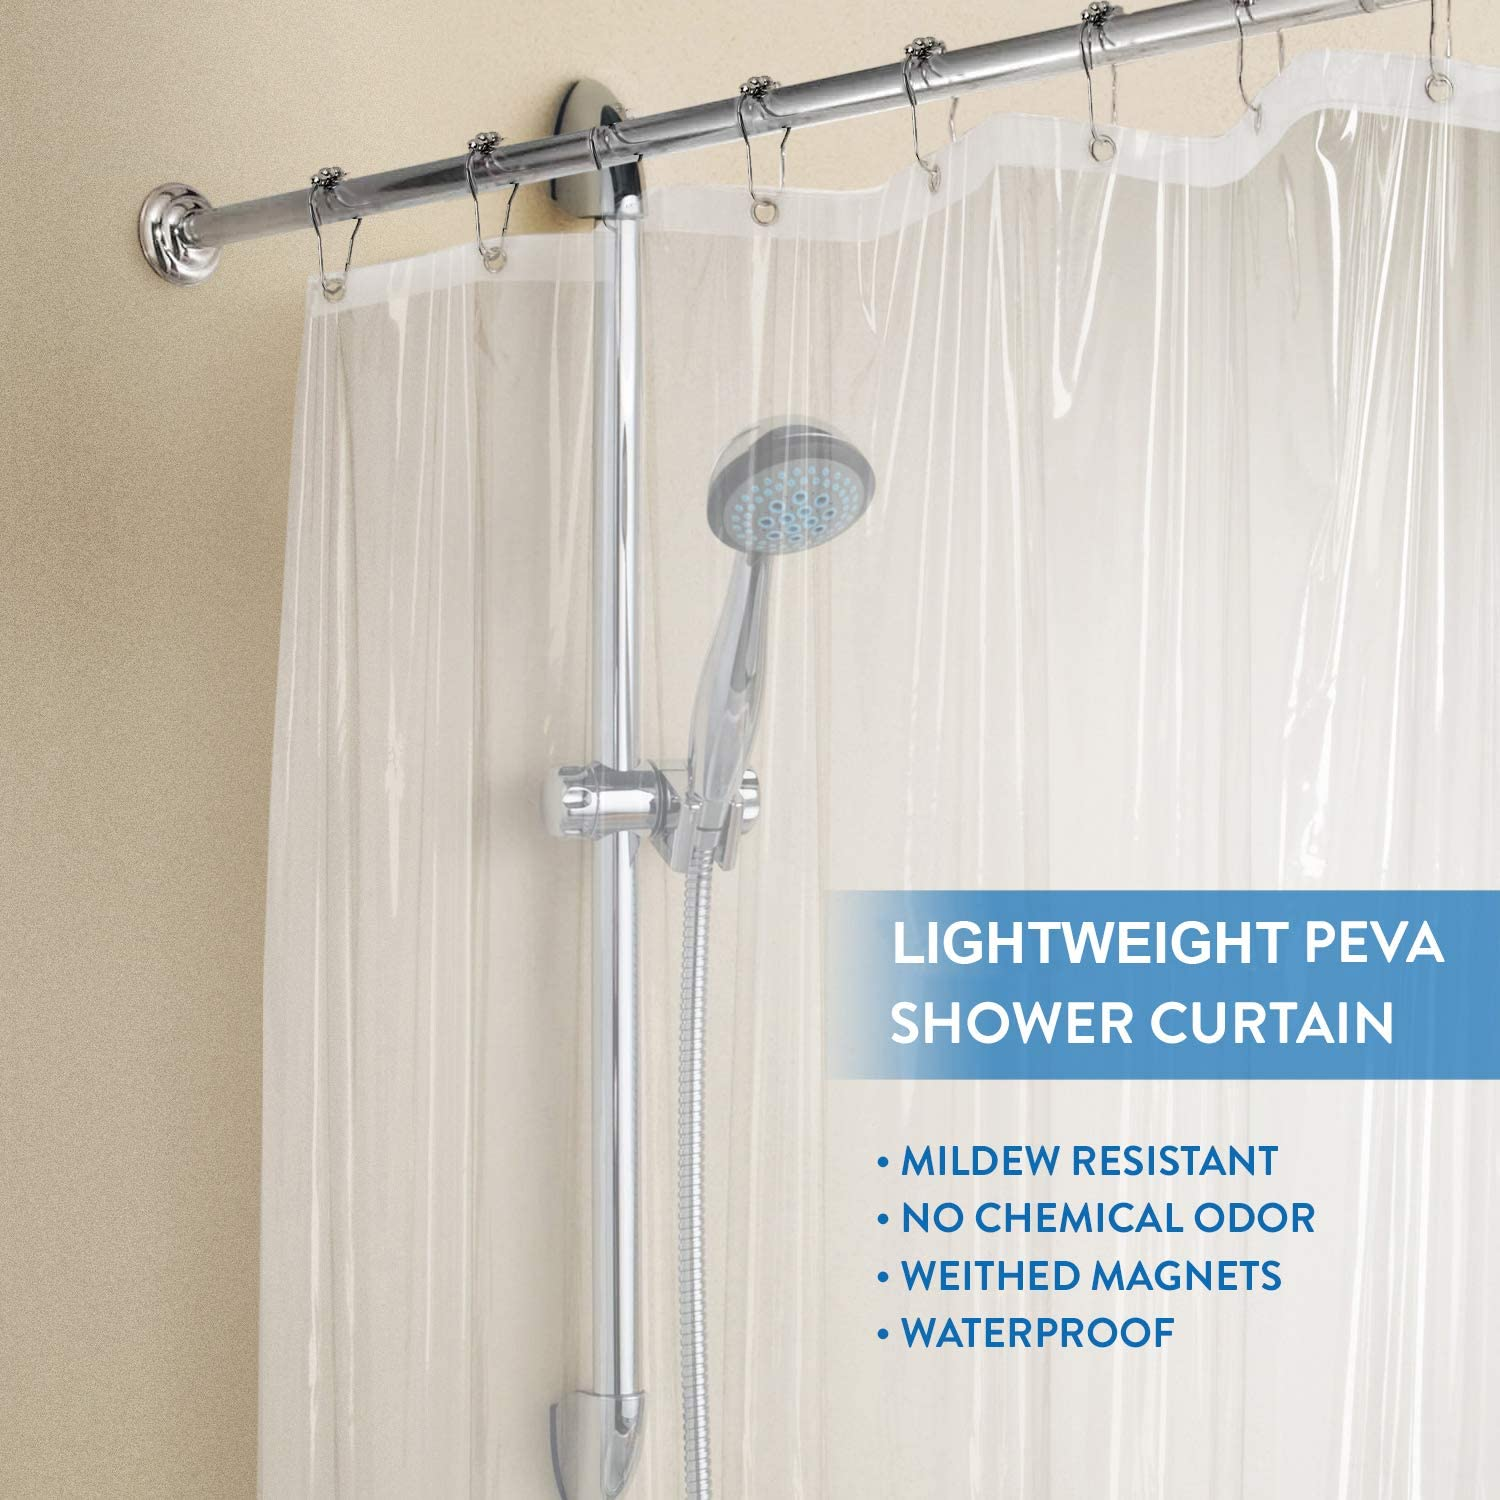 PEVA 3 Gauge Light Weight,Waterproof,Odorless with Rust-Resistant Grommets Holes downluxe Set of 3 Clear Shower Curtain Liner 72x72